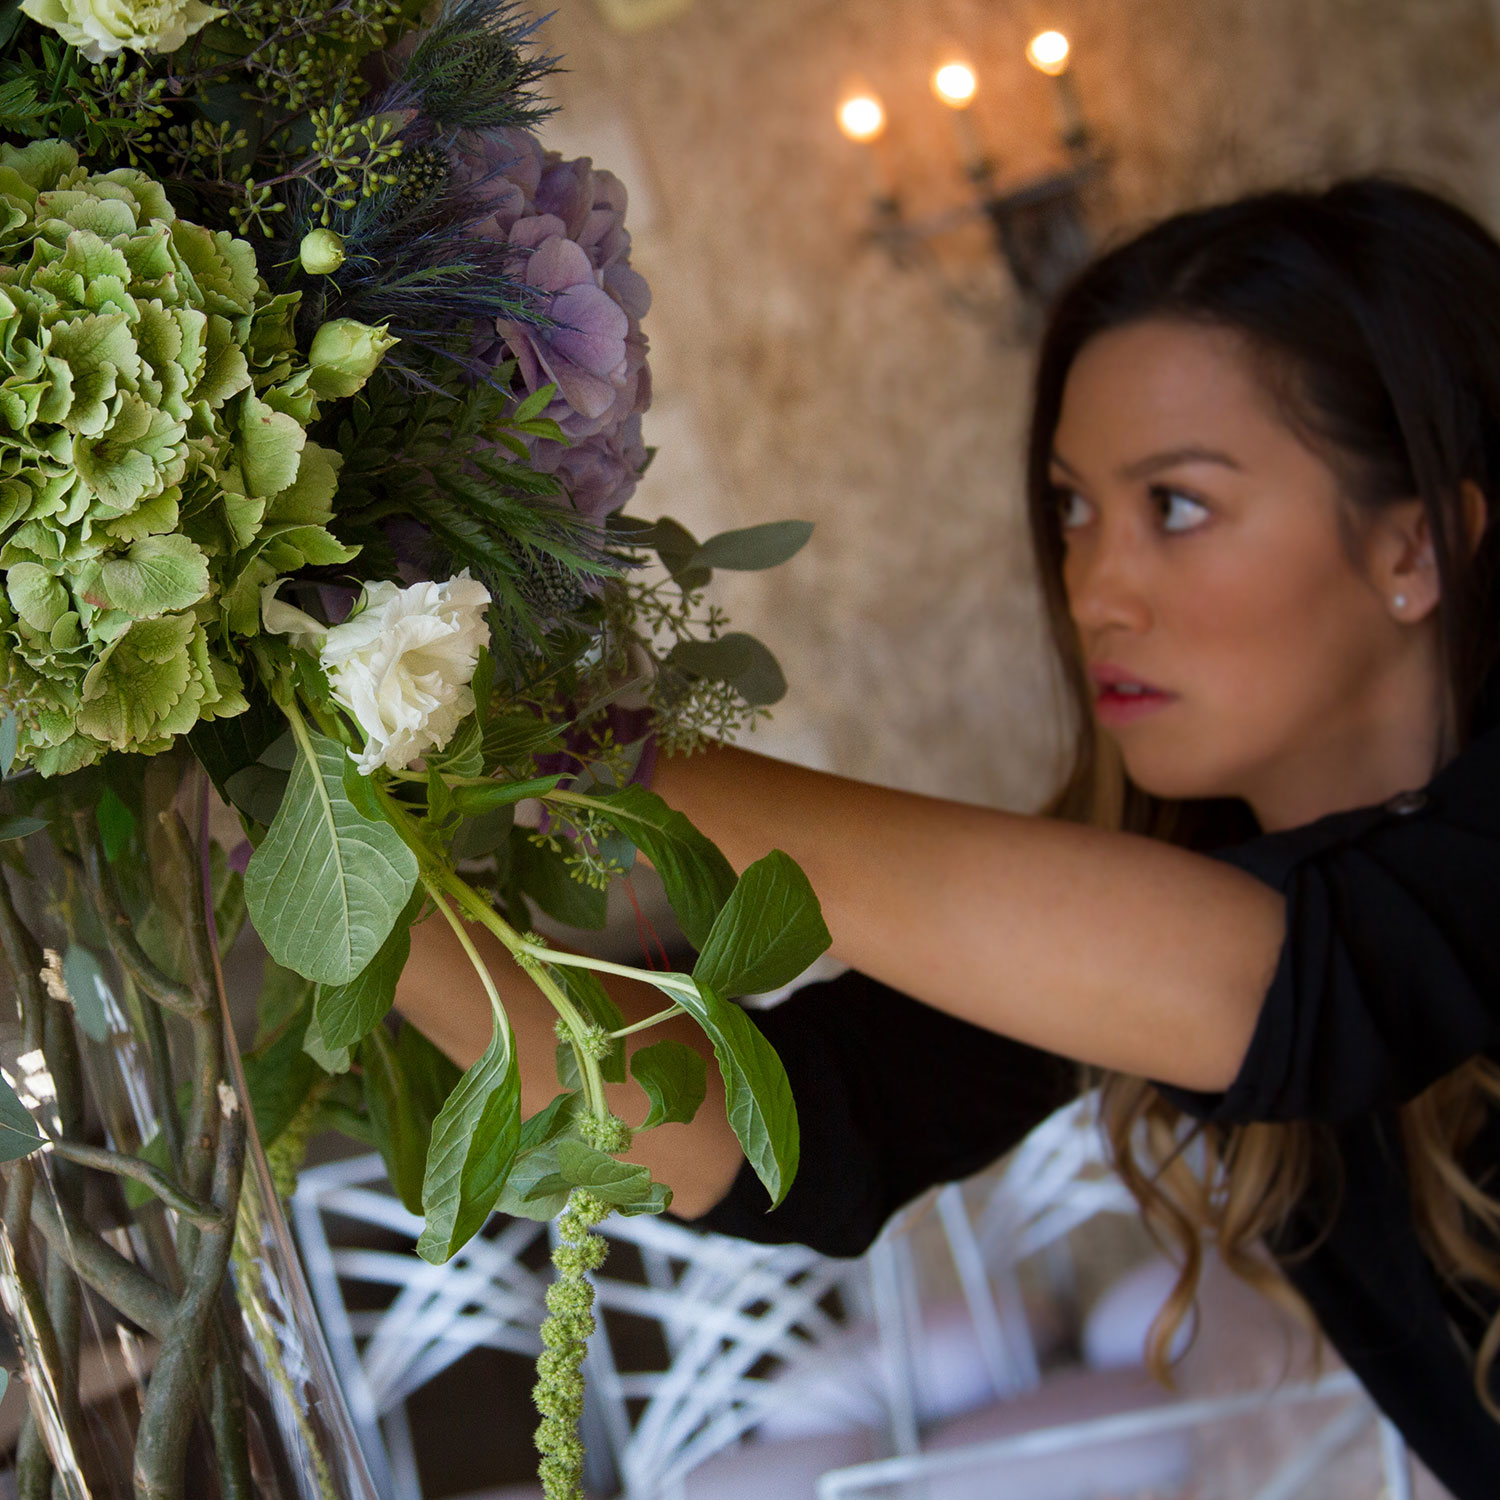 Kailee - Owner - Kailee started working in the floral industry in 2003. Later in 2009 she studied Floral Design at the Boerma Institute in Aalsmeer, NL. Eventually moving on to work in Vancouver for two years, she moved back to her home town to purchase the former Willow Haven and continue her career in the floral industry!